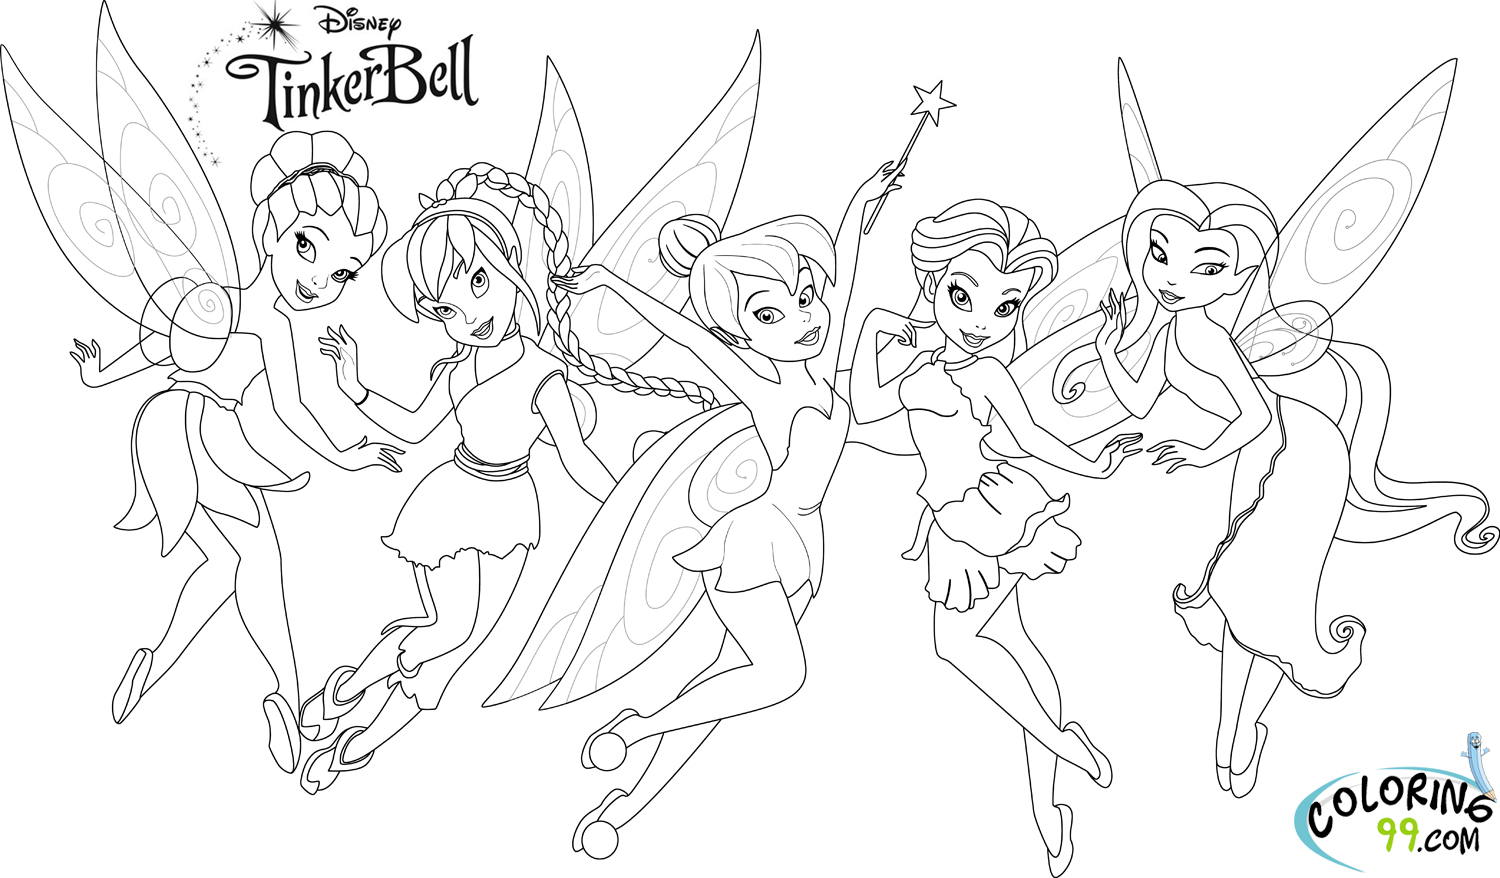 tinkerbell friends printable coloring pages | June 2013 | Team colors